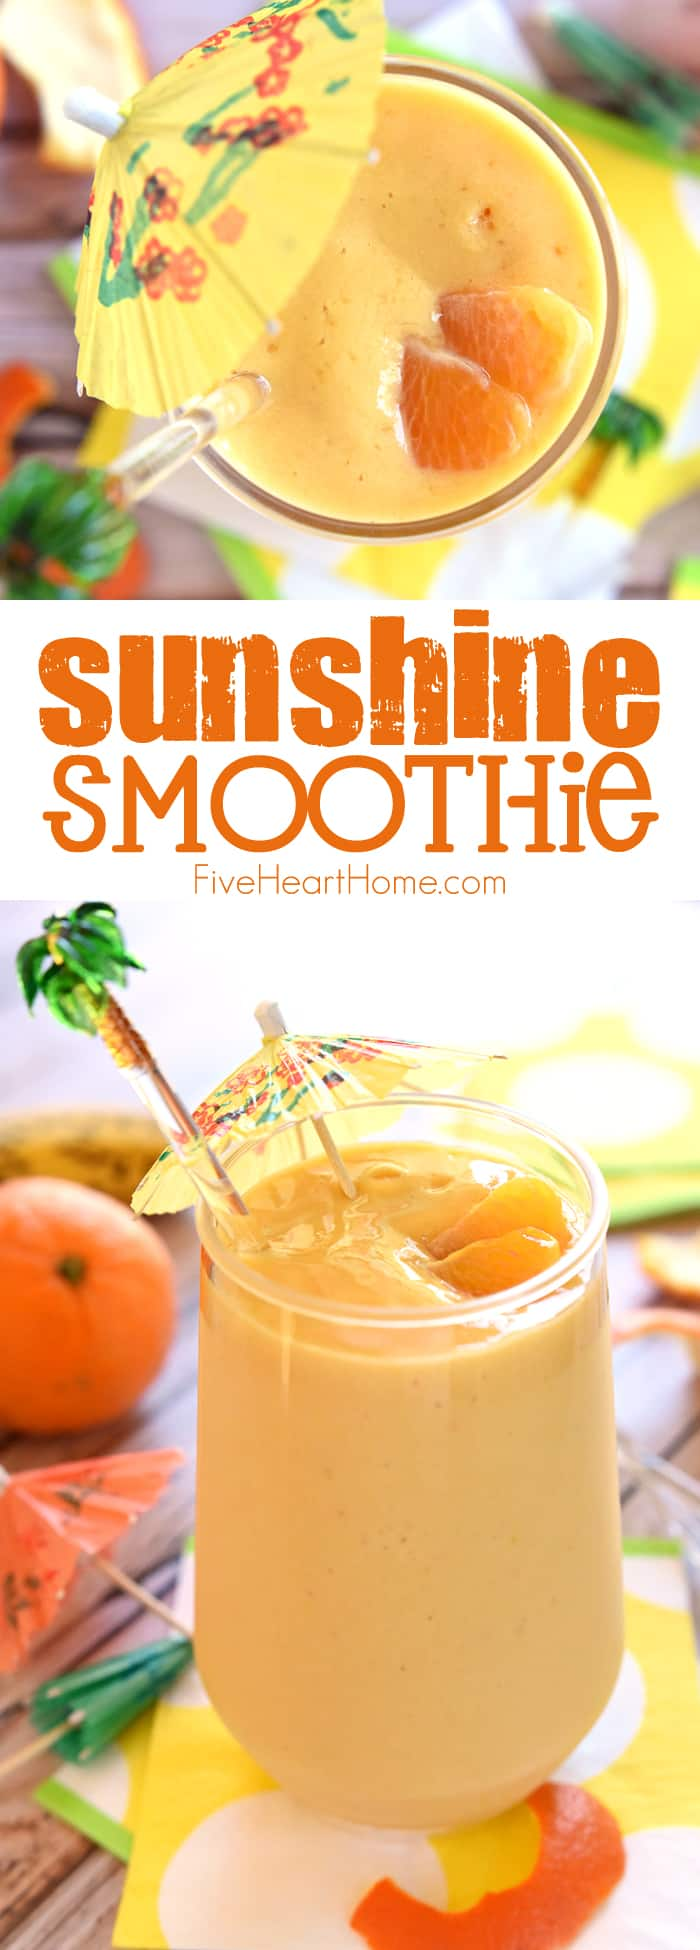 Sunshine Smoothie Collage with Text Overlay